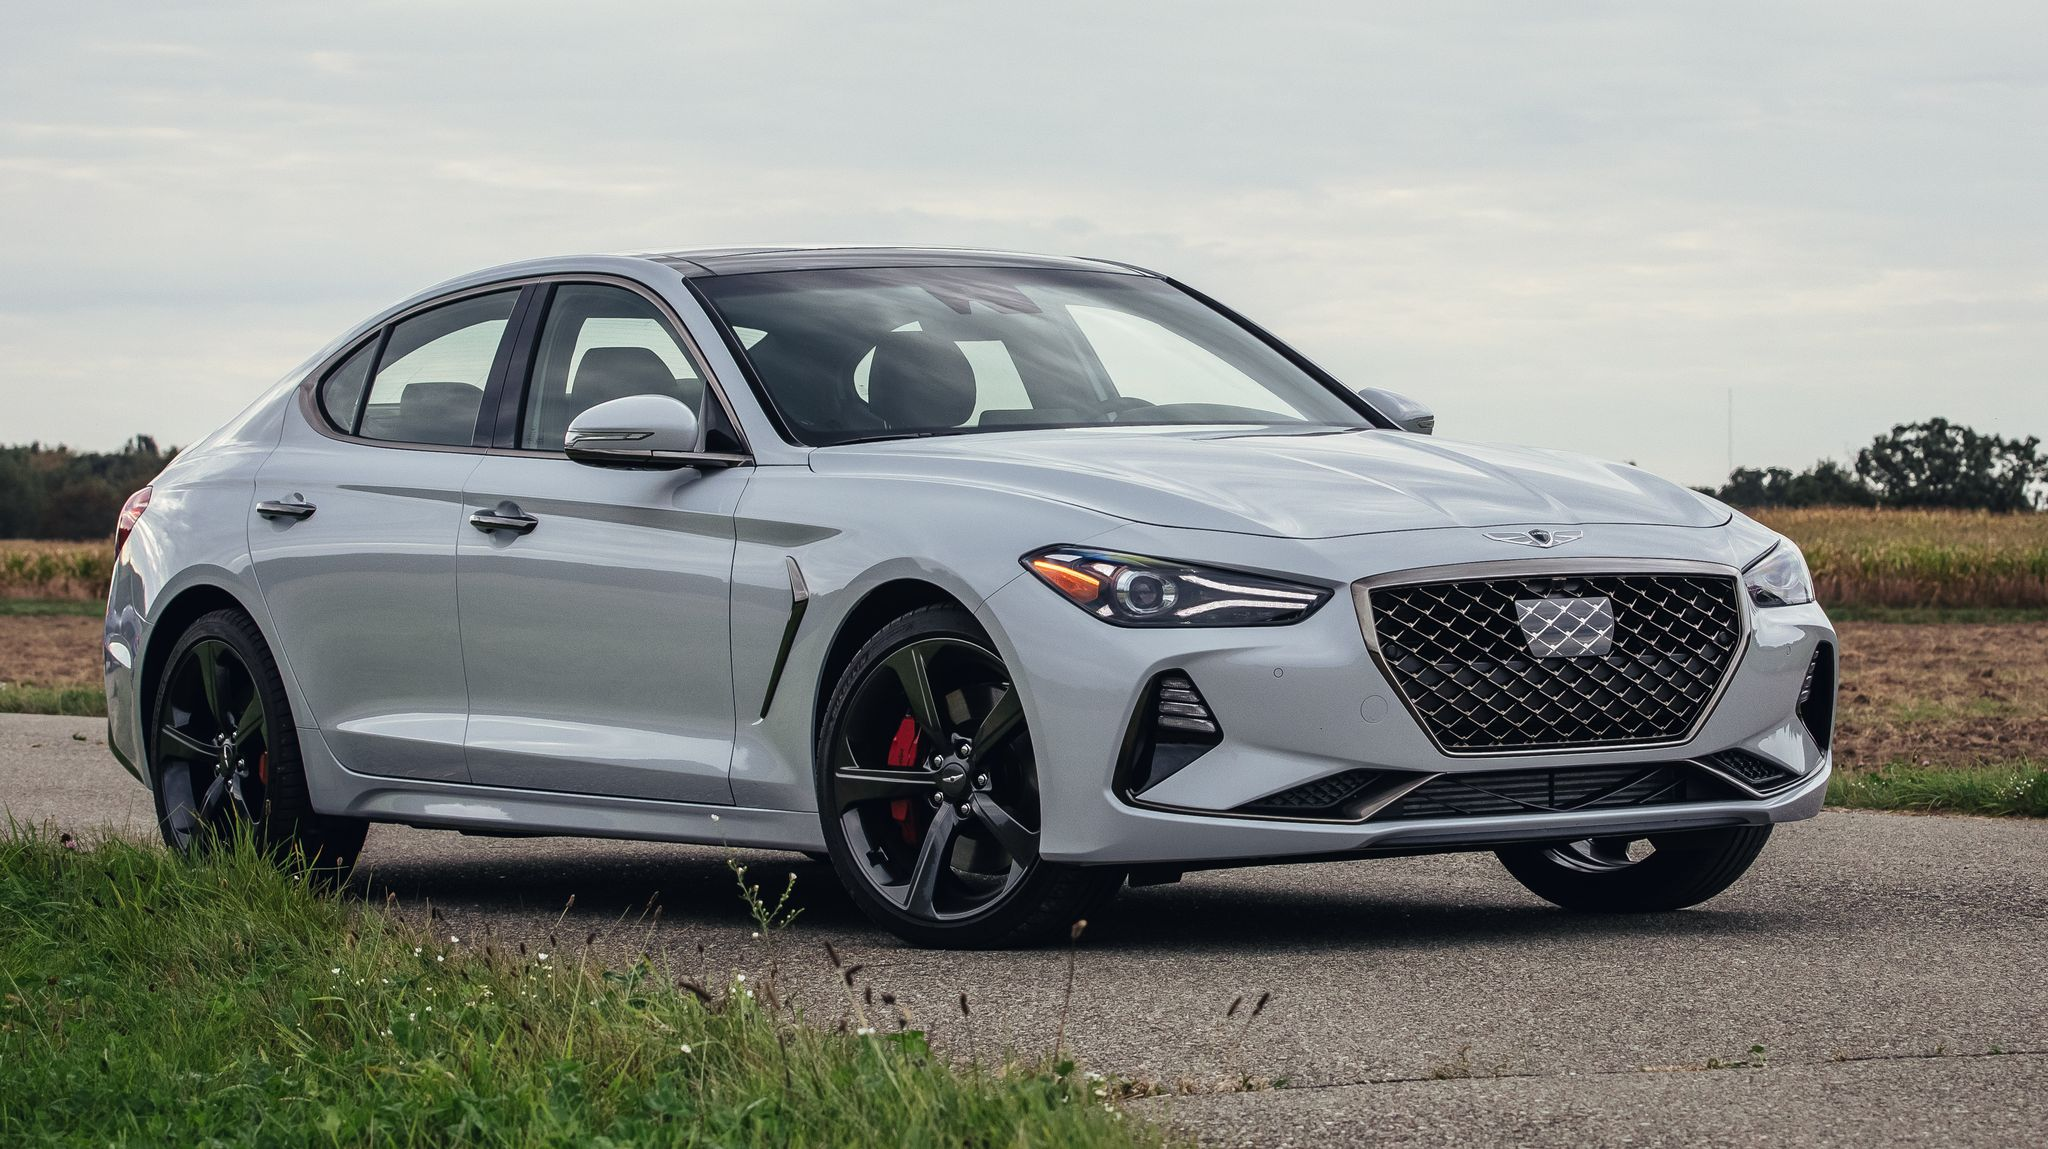 2020 Genesis G70 Pictures, Specs, and Pricing – Wallace Genesis Blog